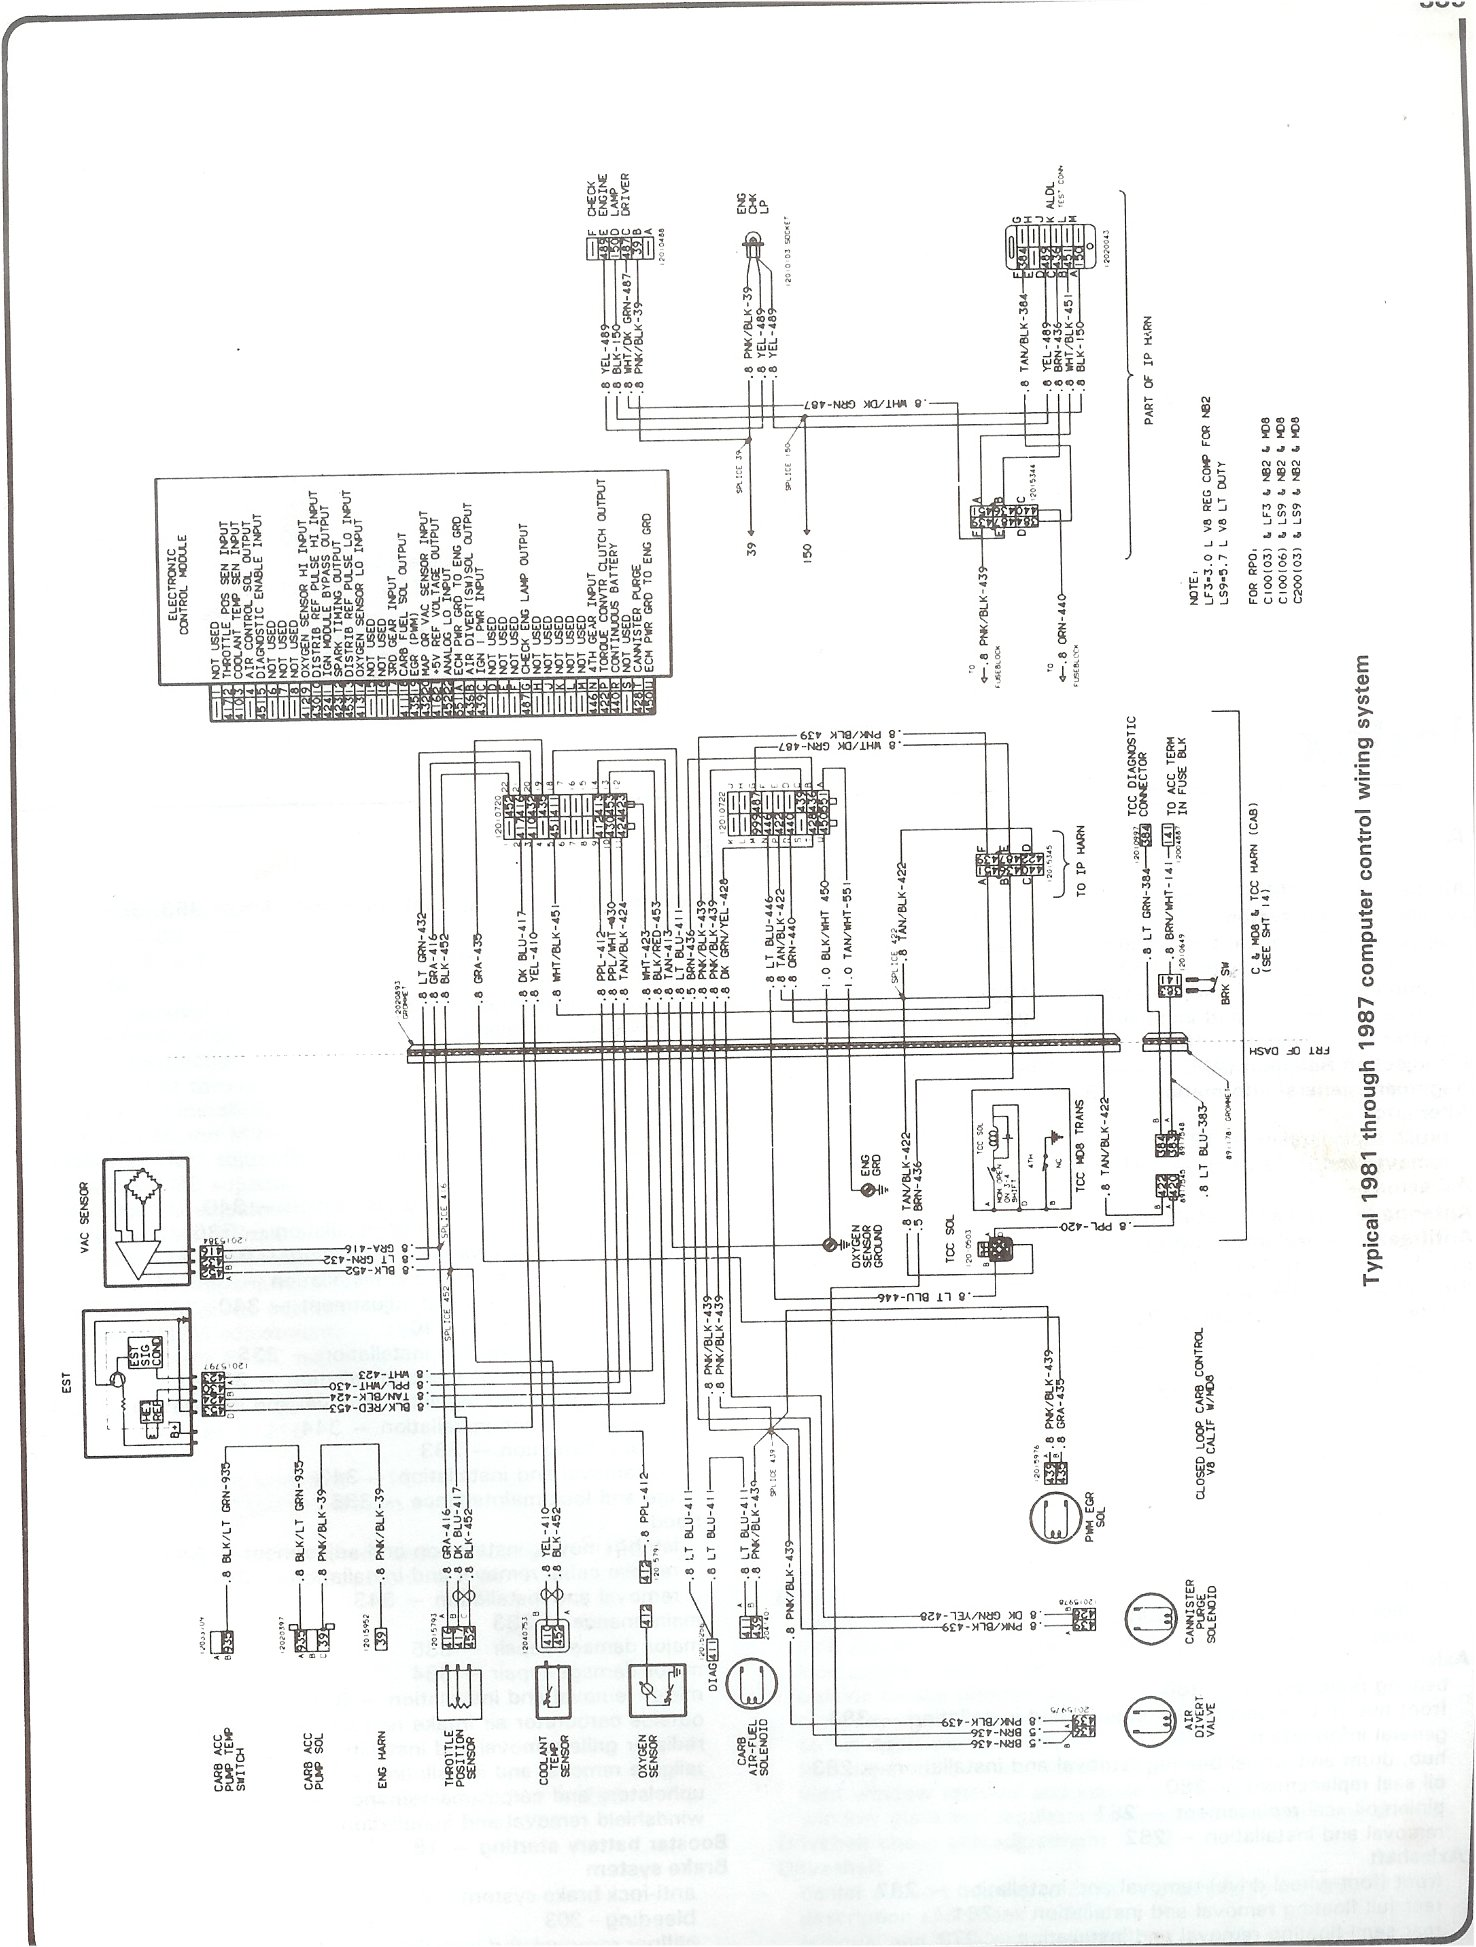 complete 73 87 wiring diagrams rh forum 73 87chevytrucks com 1965 Chevy Truck Wiring Diagram 94 Chevy Truck Wiring Diagram